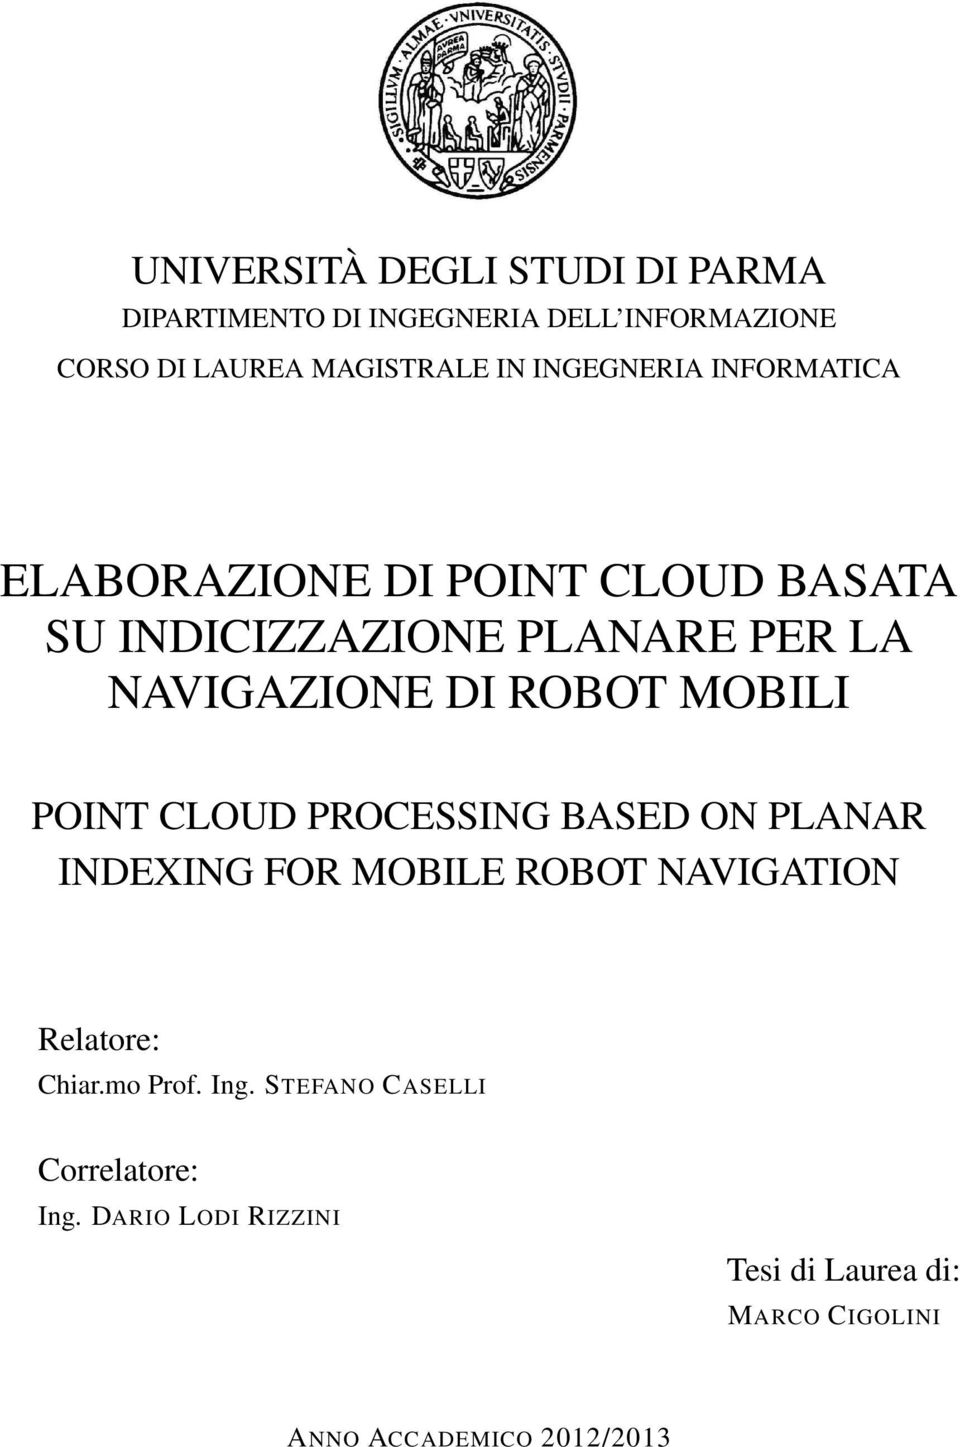 ROBOT MOBILI POINT CLOUD PROCESSING BASED ON PLANAR INDEXING FOR MOBILE ROBOT NAVIGATION Relatore: Chiar.